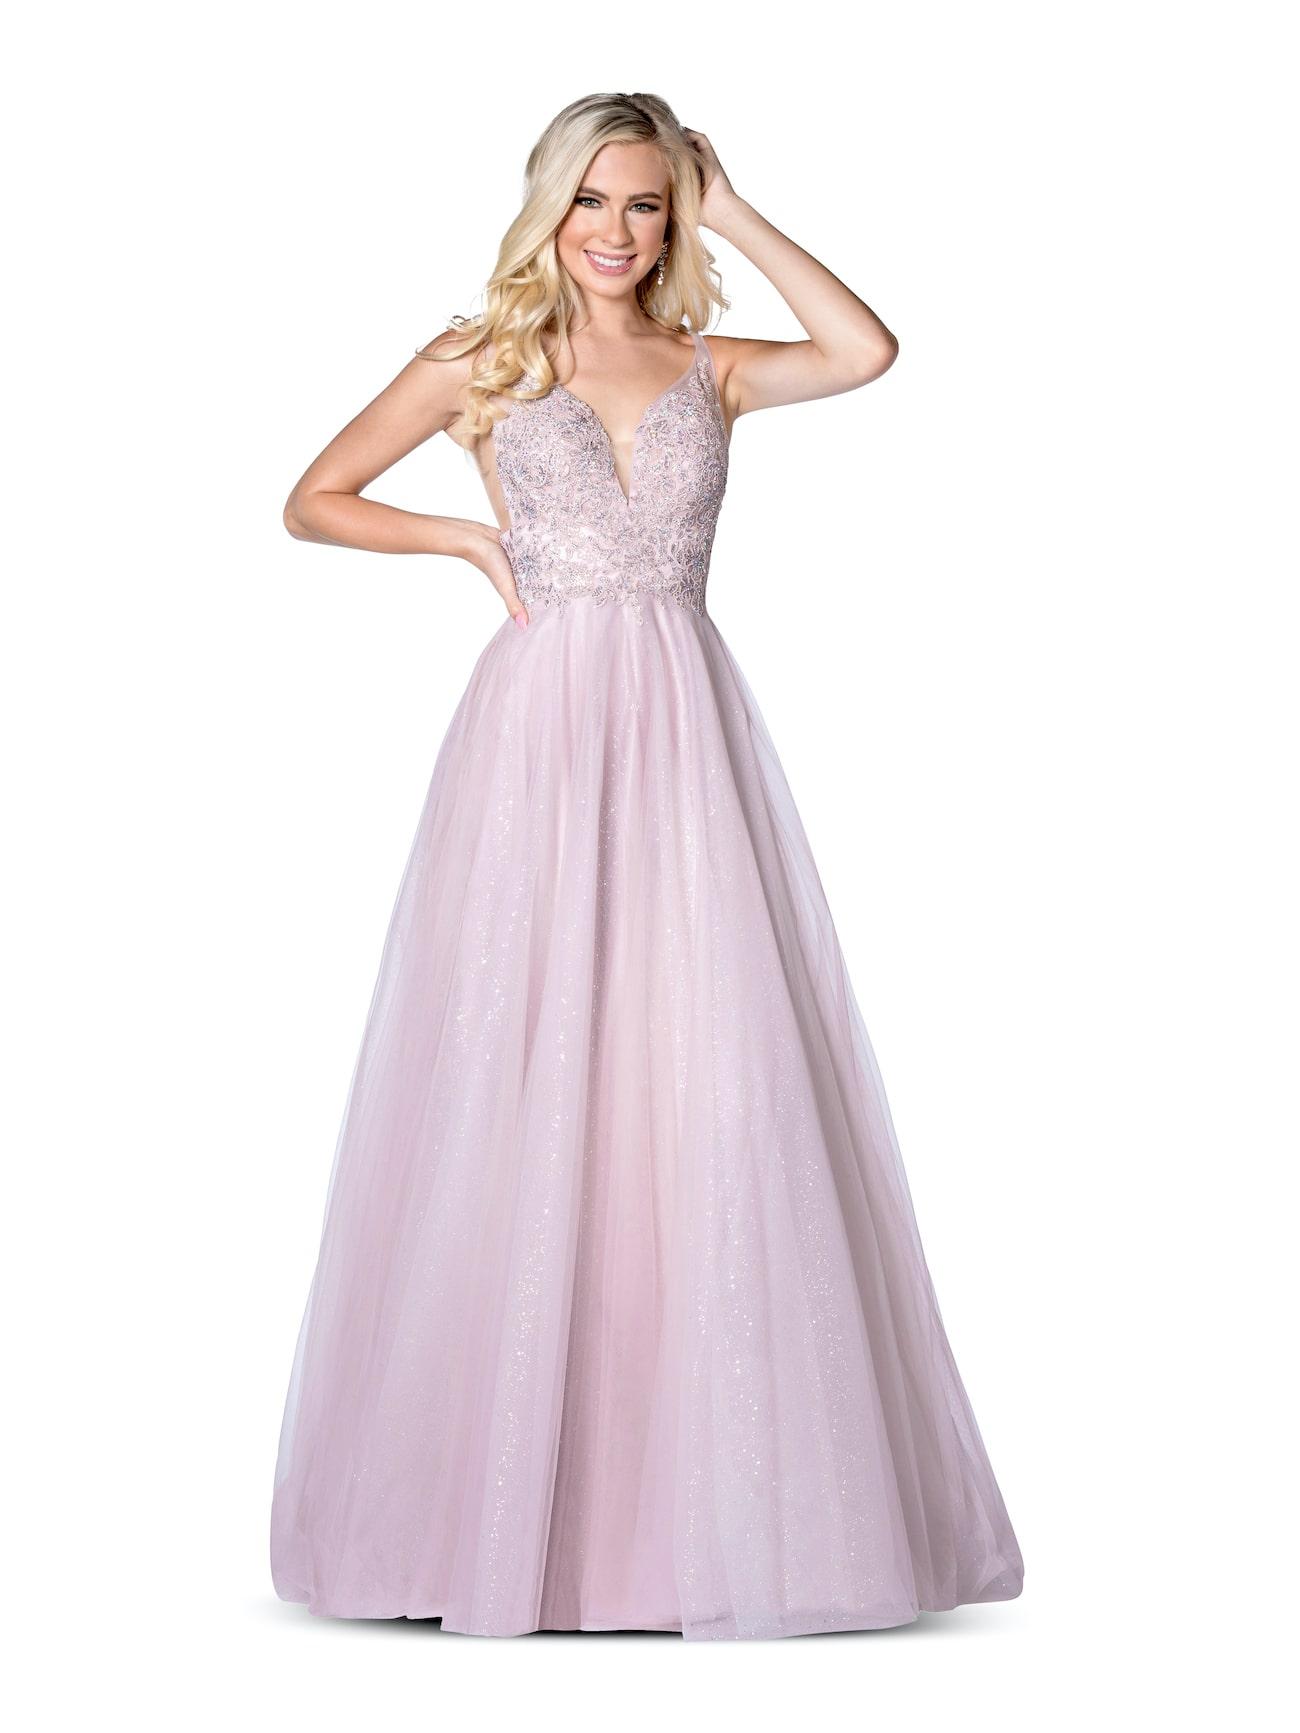 Vienna Pink Size 8 Shiny A-line Dress on Queenly